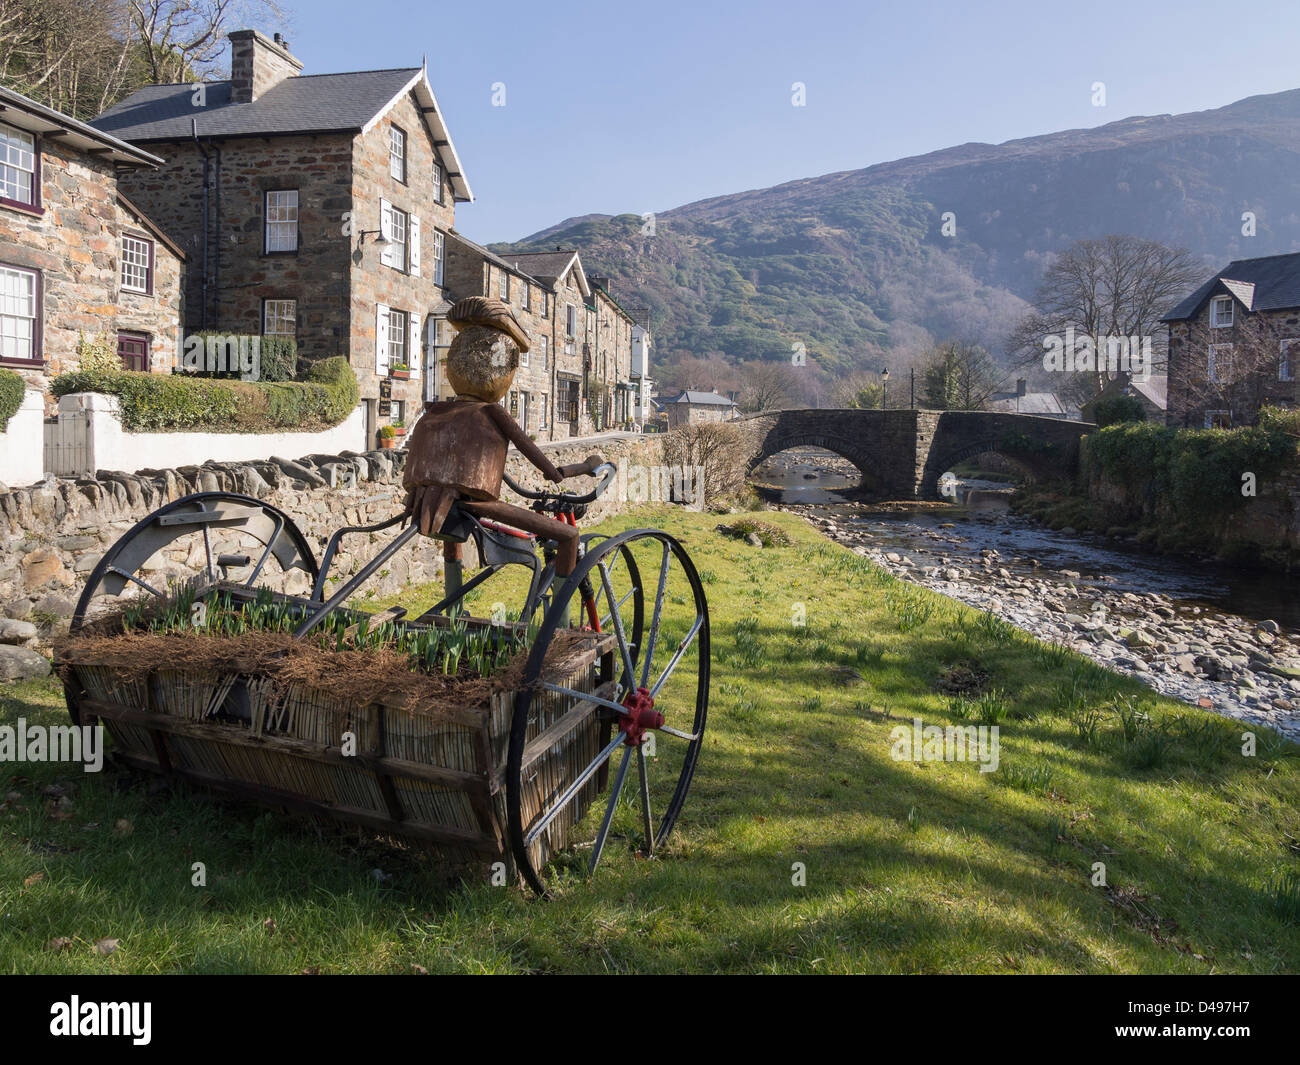 View along Afon Colwyn River to old bridge with unusual tricycle flower planter on riverside in Beddgelert, Snowdonia, - Stock Image